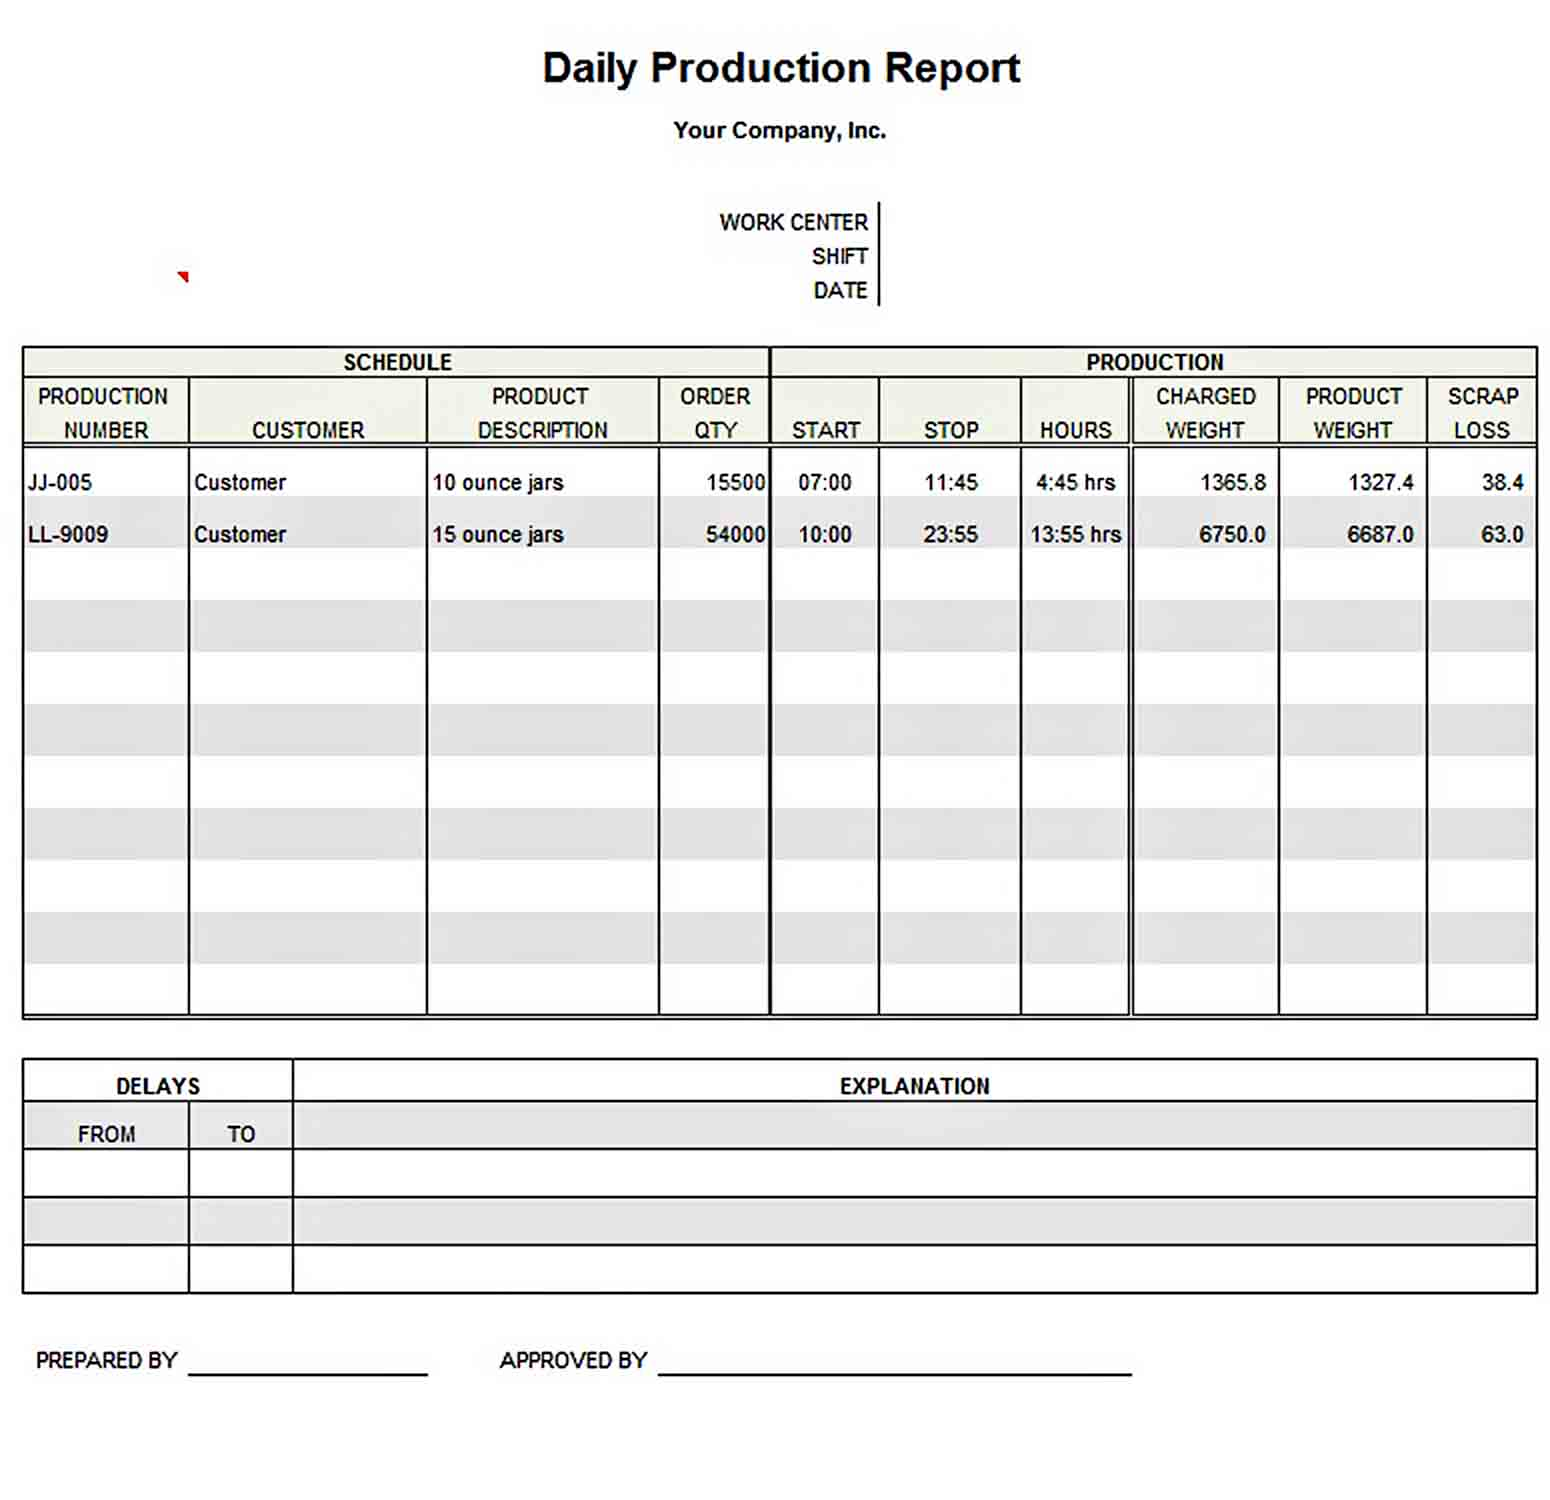 Templates Daily Production Report